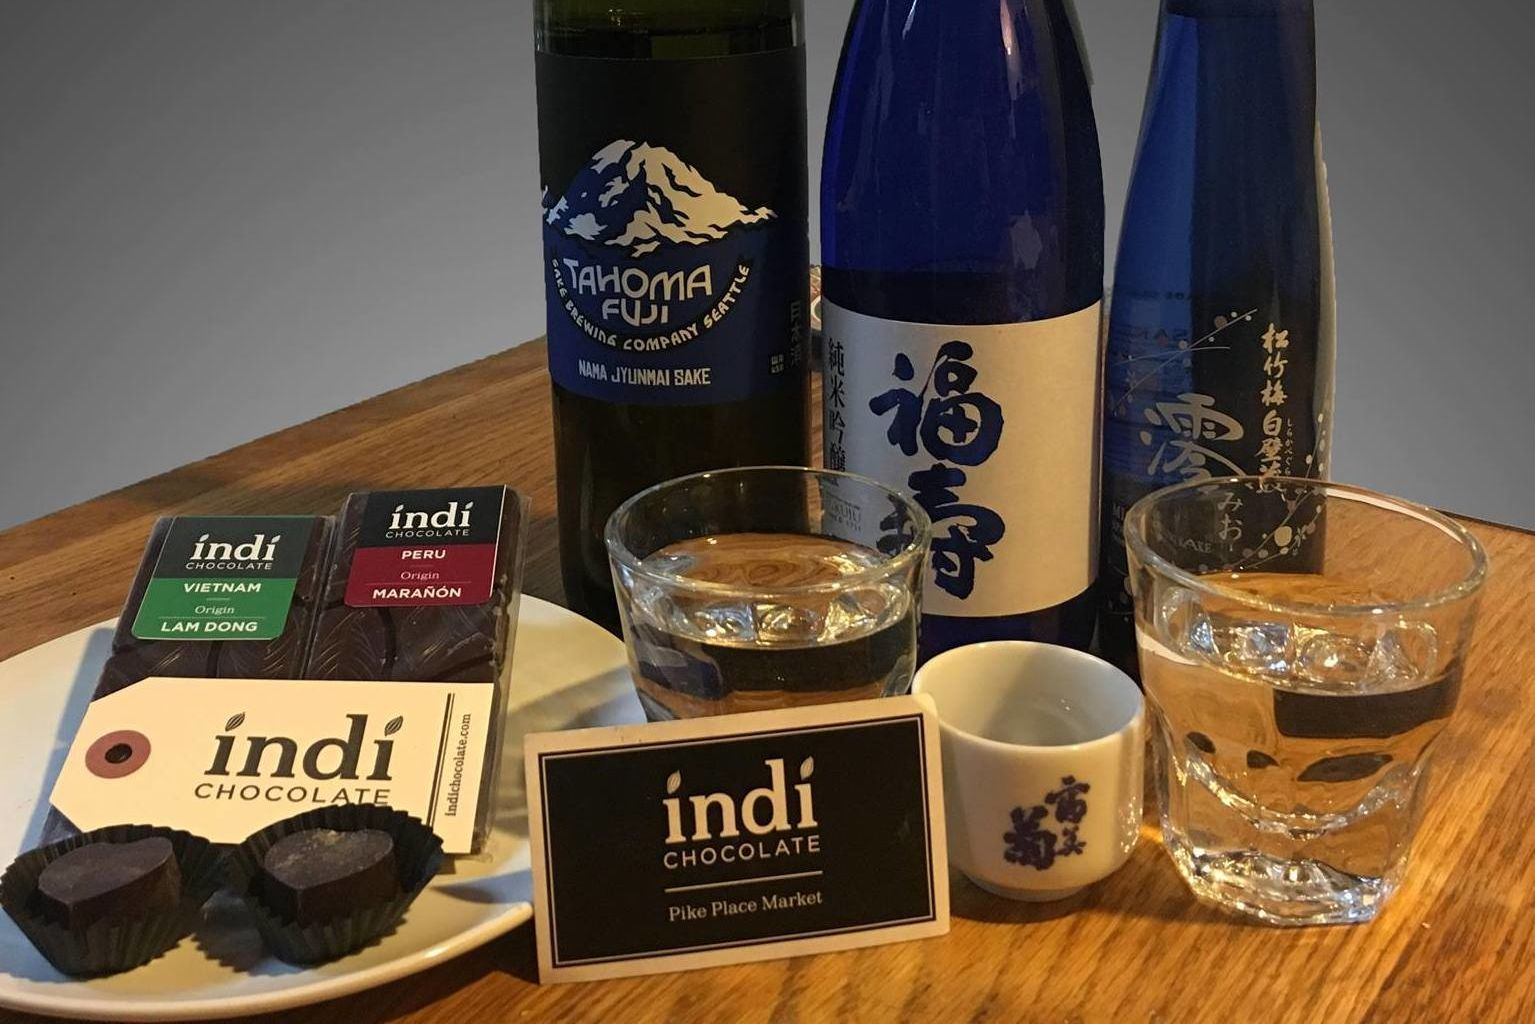 Chocolate and sake pairing z1nnua